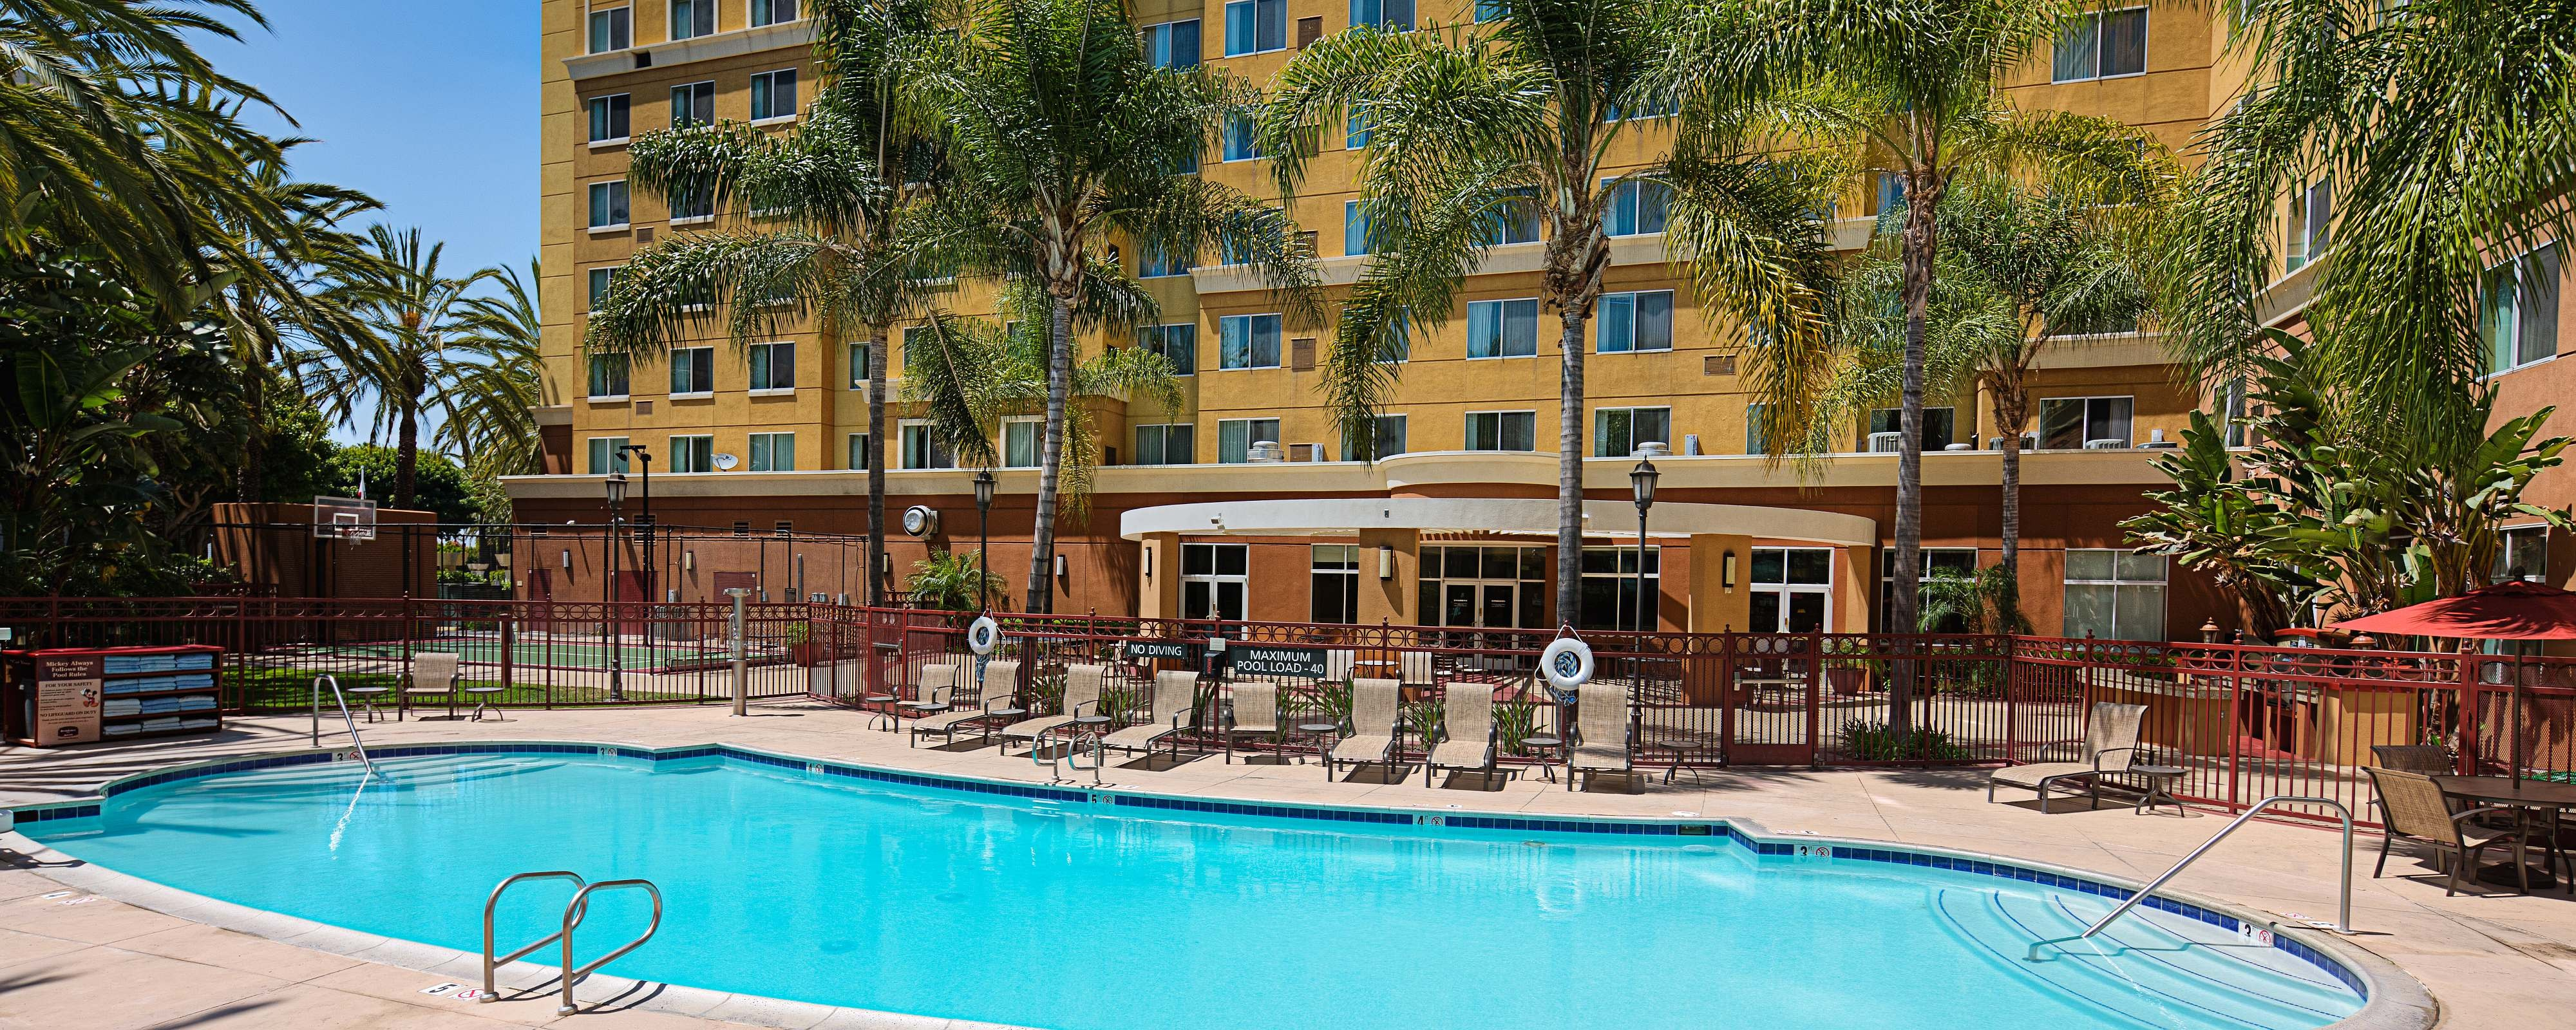 Hotel gym in Garden Grove | Recreation Activities at the Residence ...